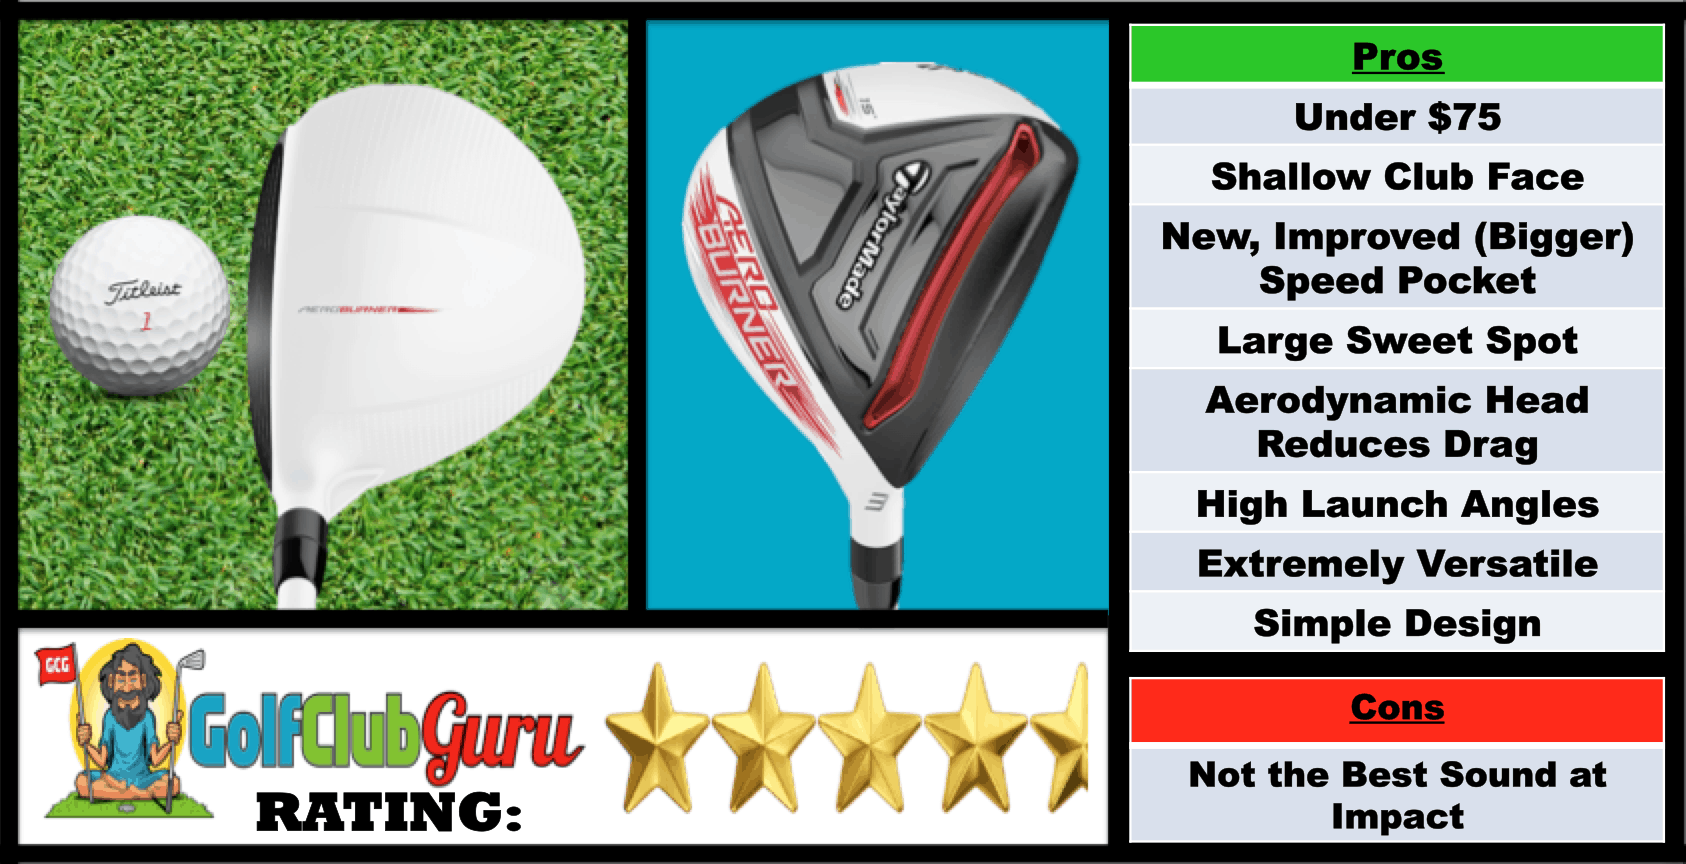 Photos, Review, Ranking, Pros, and Cons of TaylorMade AeroBurner Driver